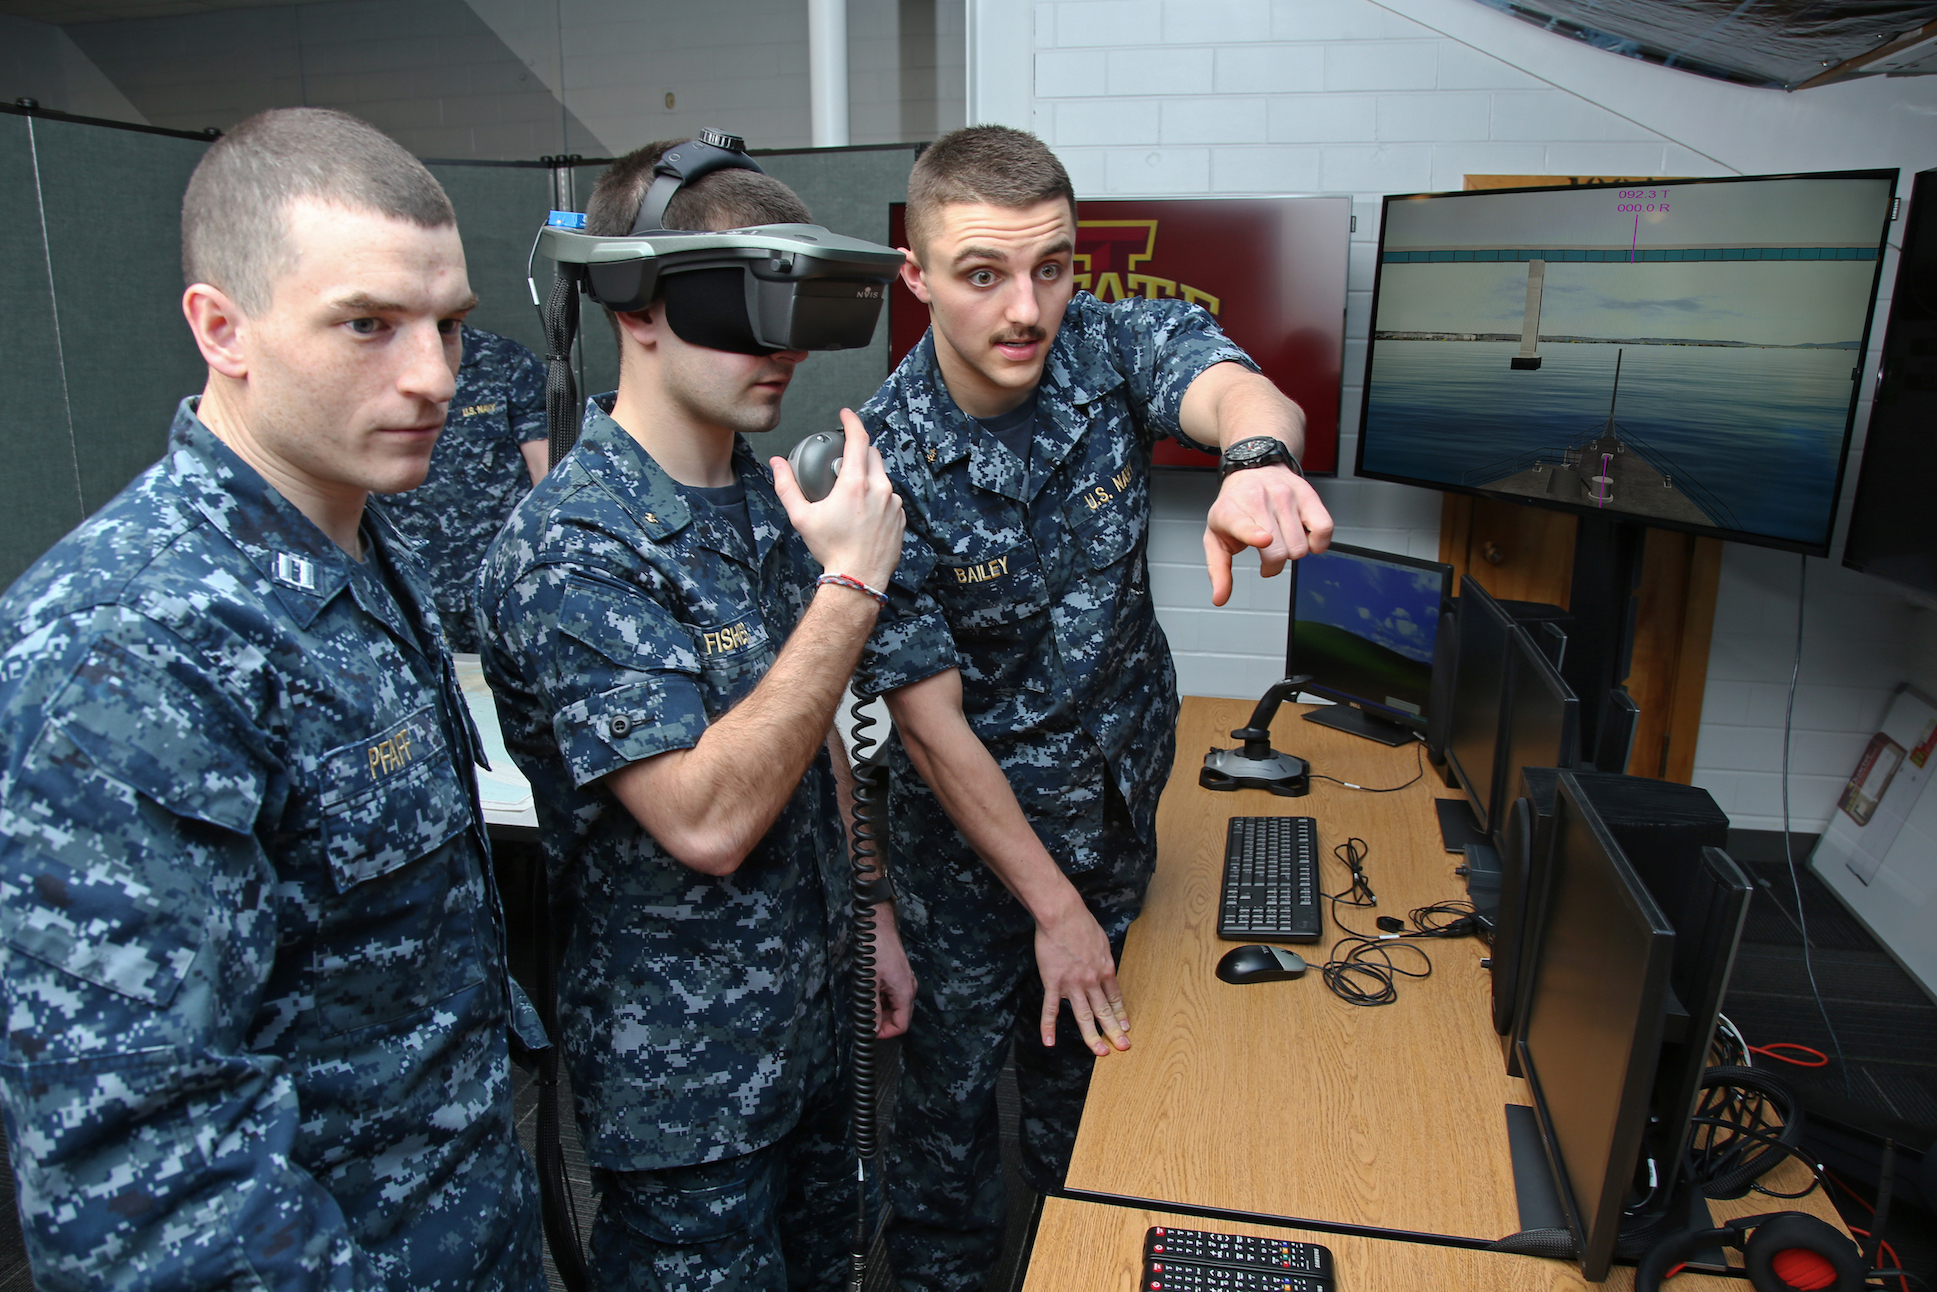 A Navy ROTC midshipmen wears the virtual reality headset while another midshipmen and instructor look on.